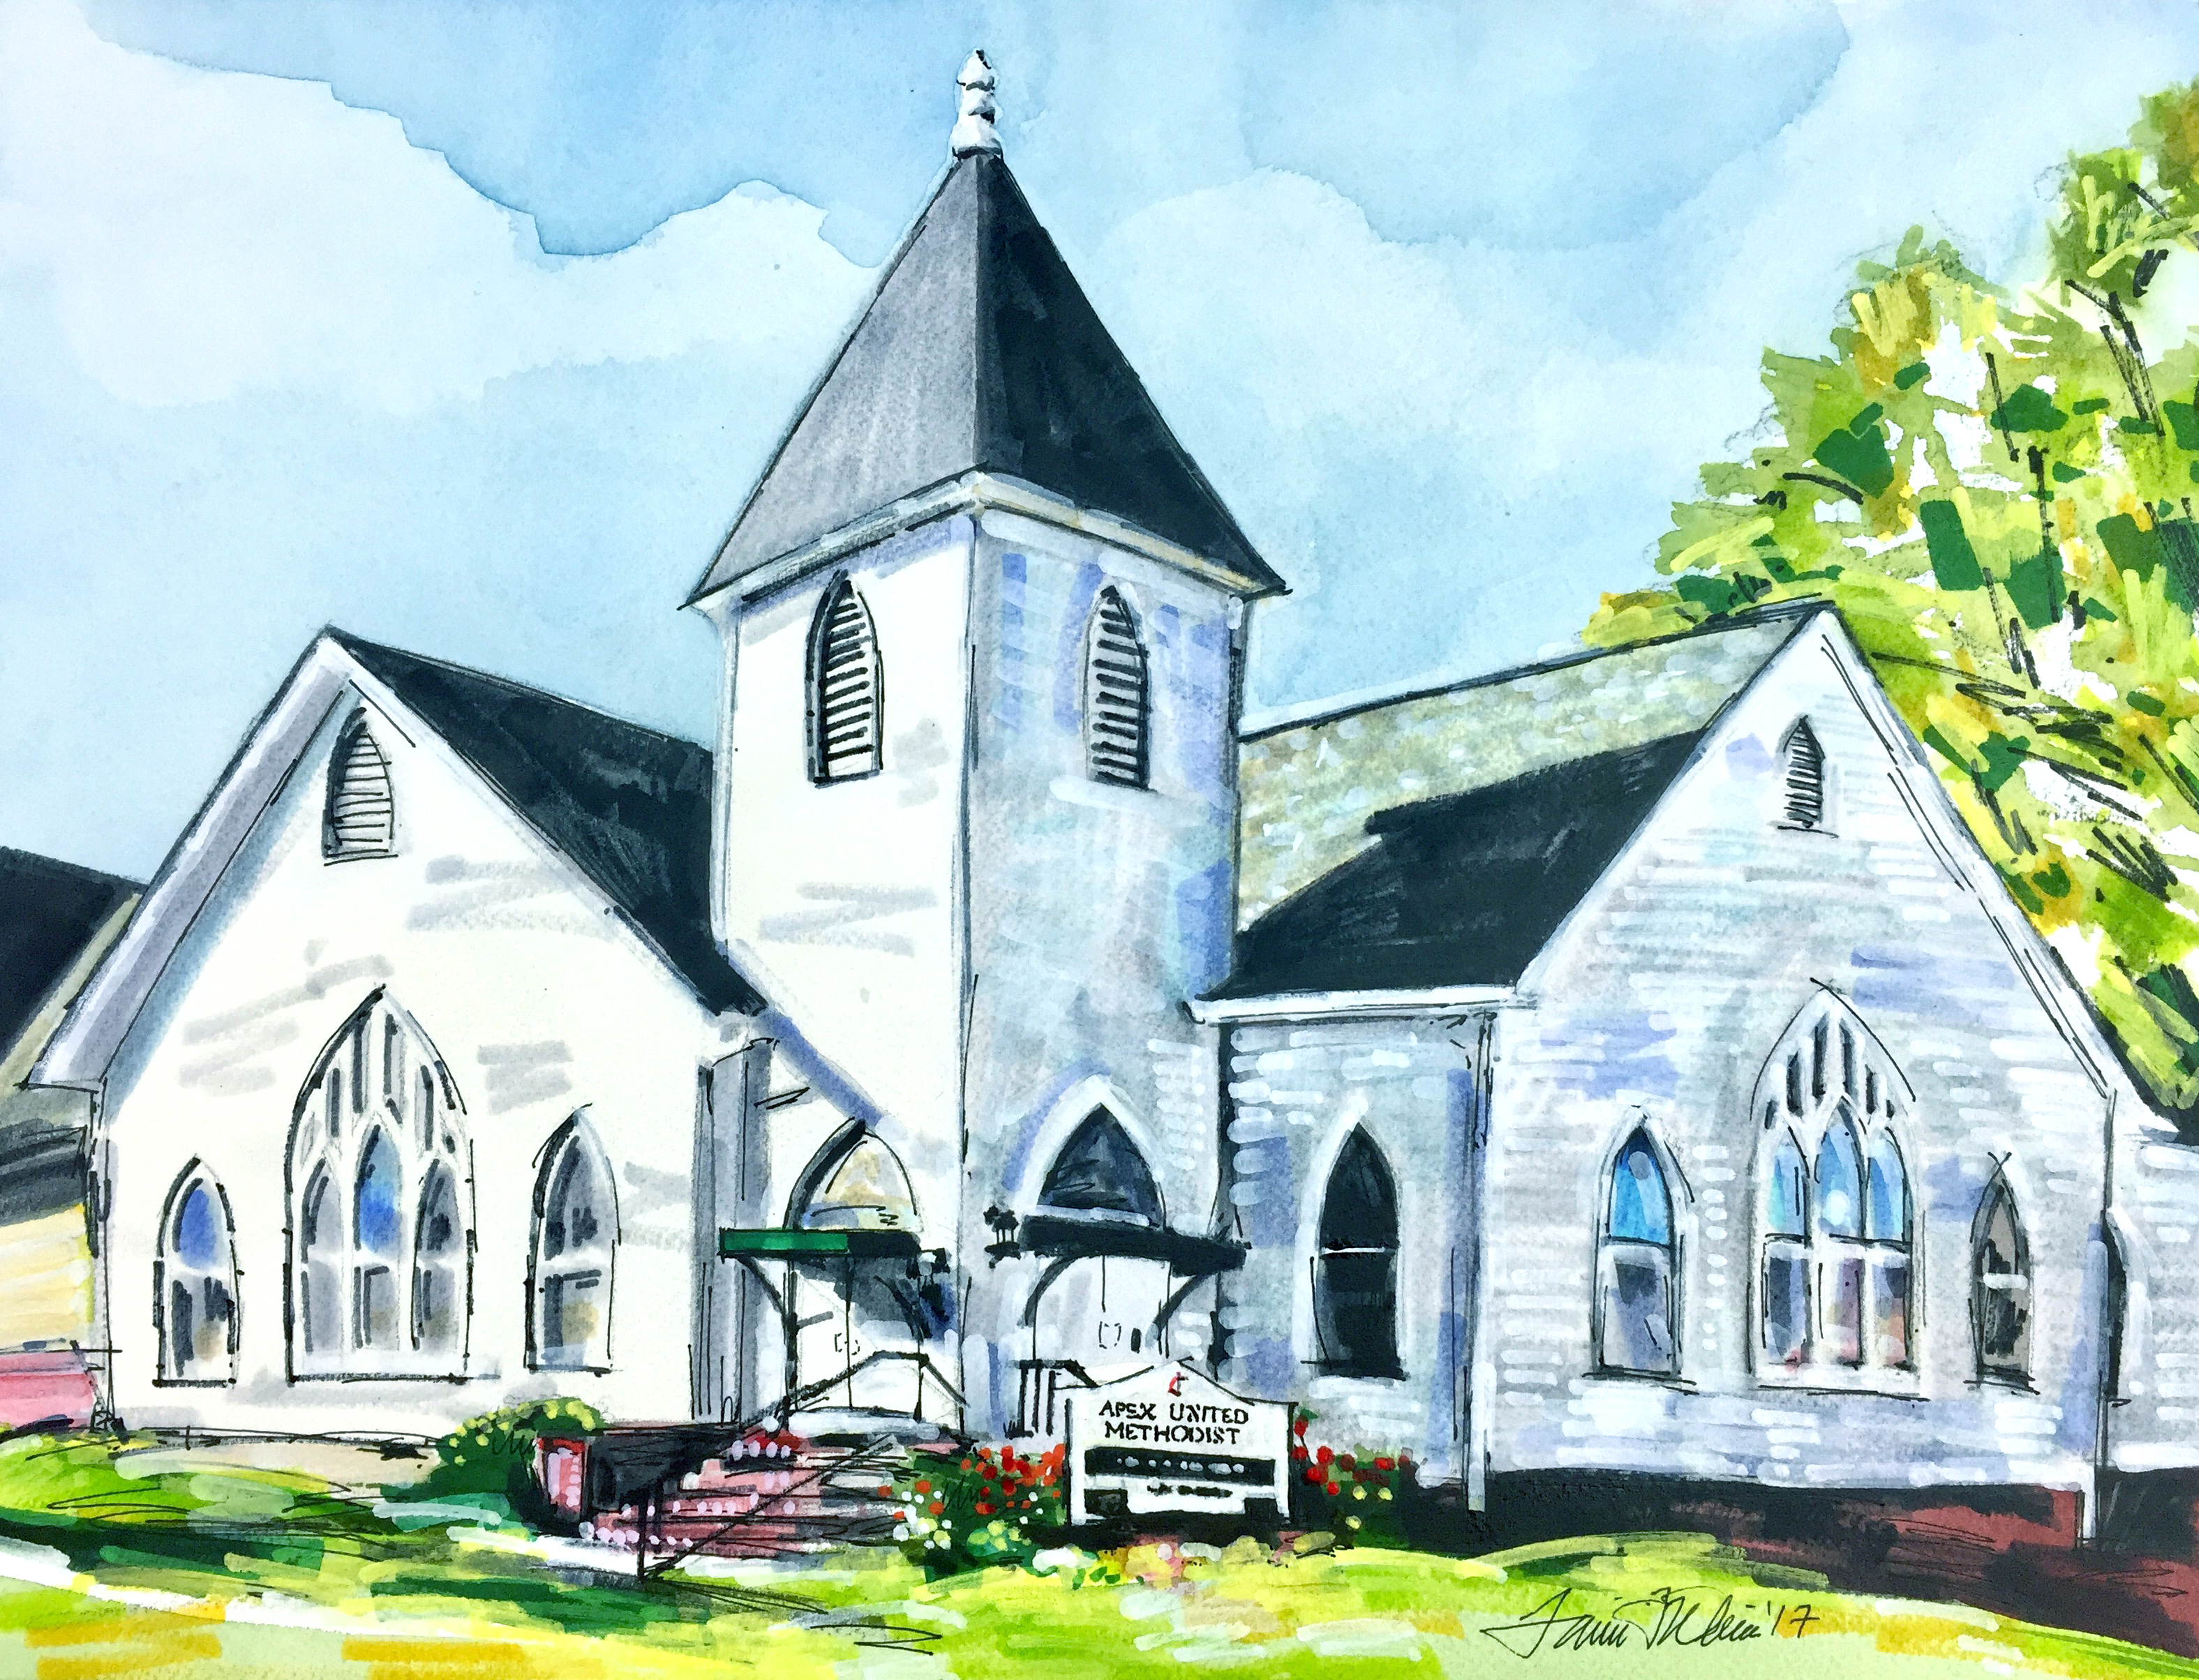 Apex United Methodist